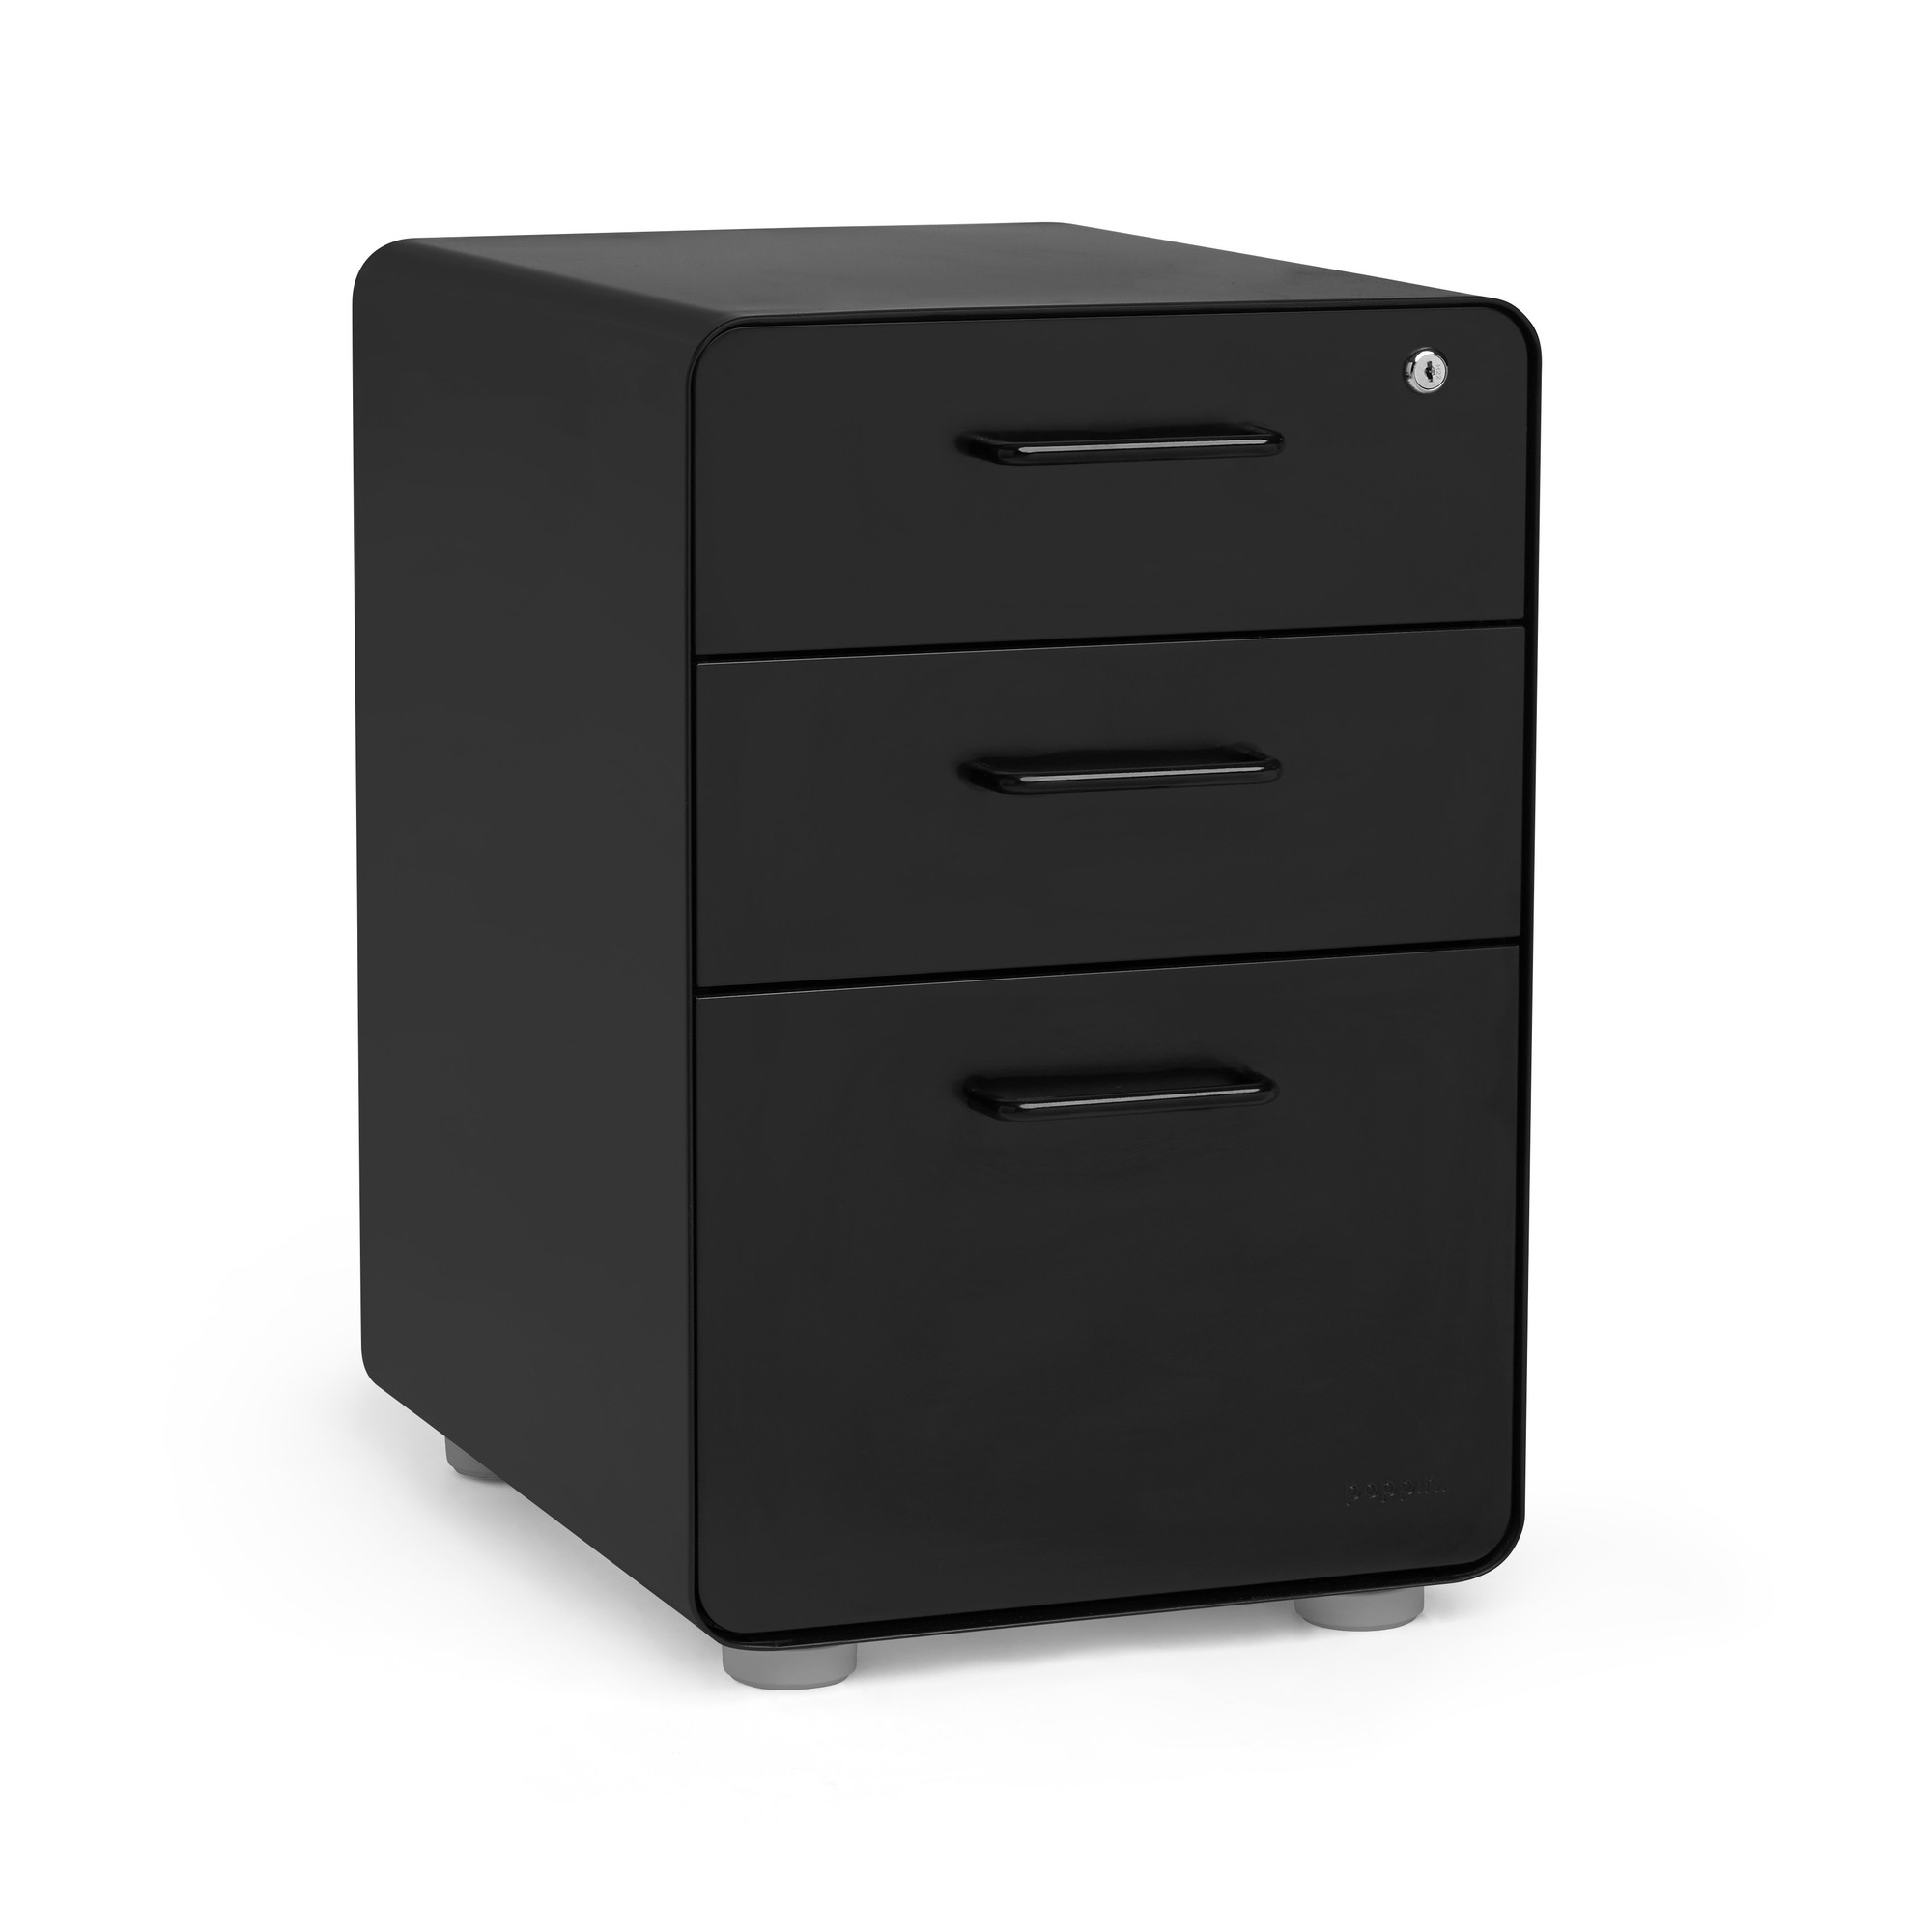 Superbe Black Stow 3 Drawer File Cabinet,Black,hi Res. Loading Zoom